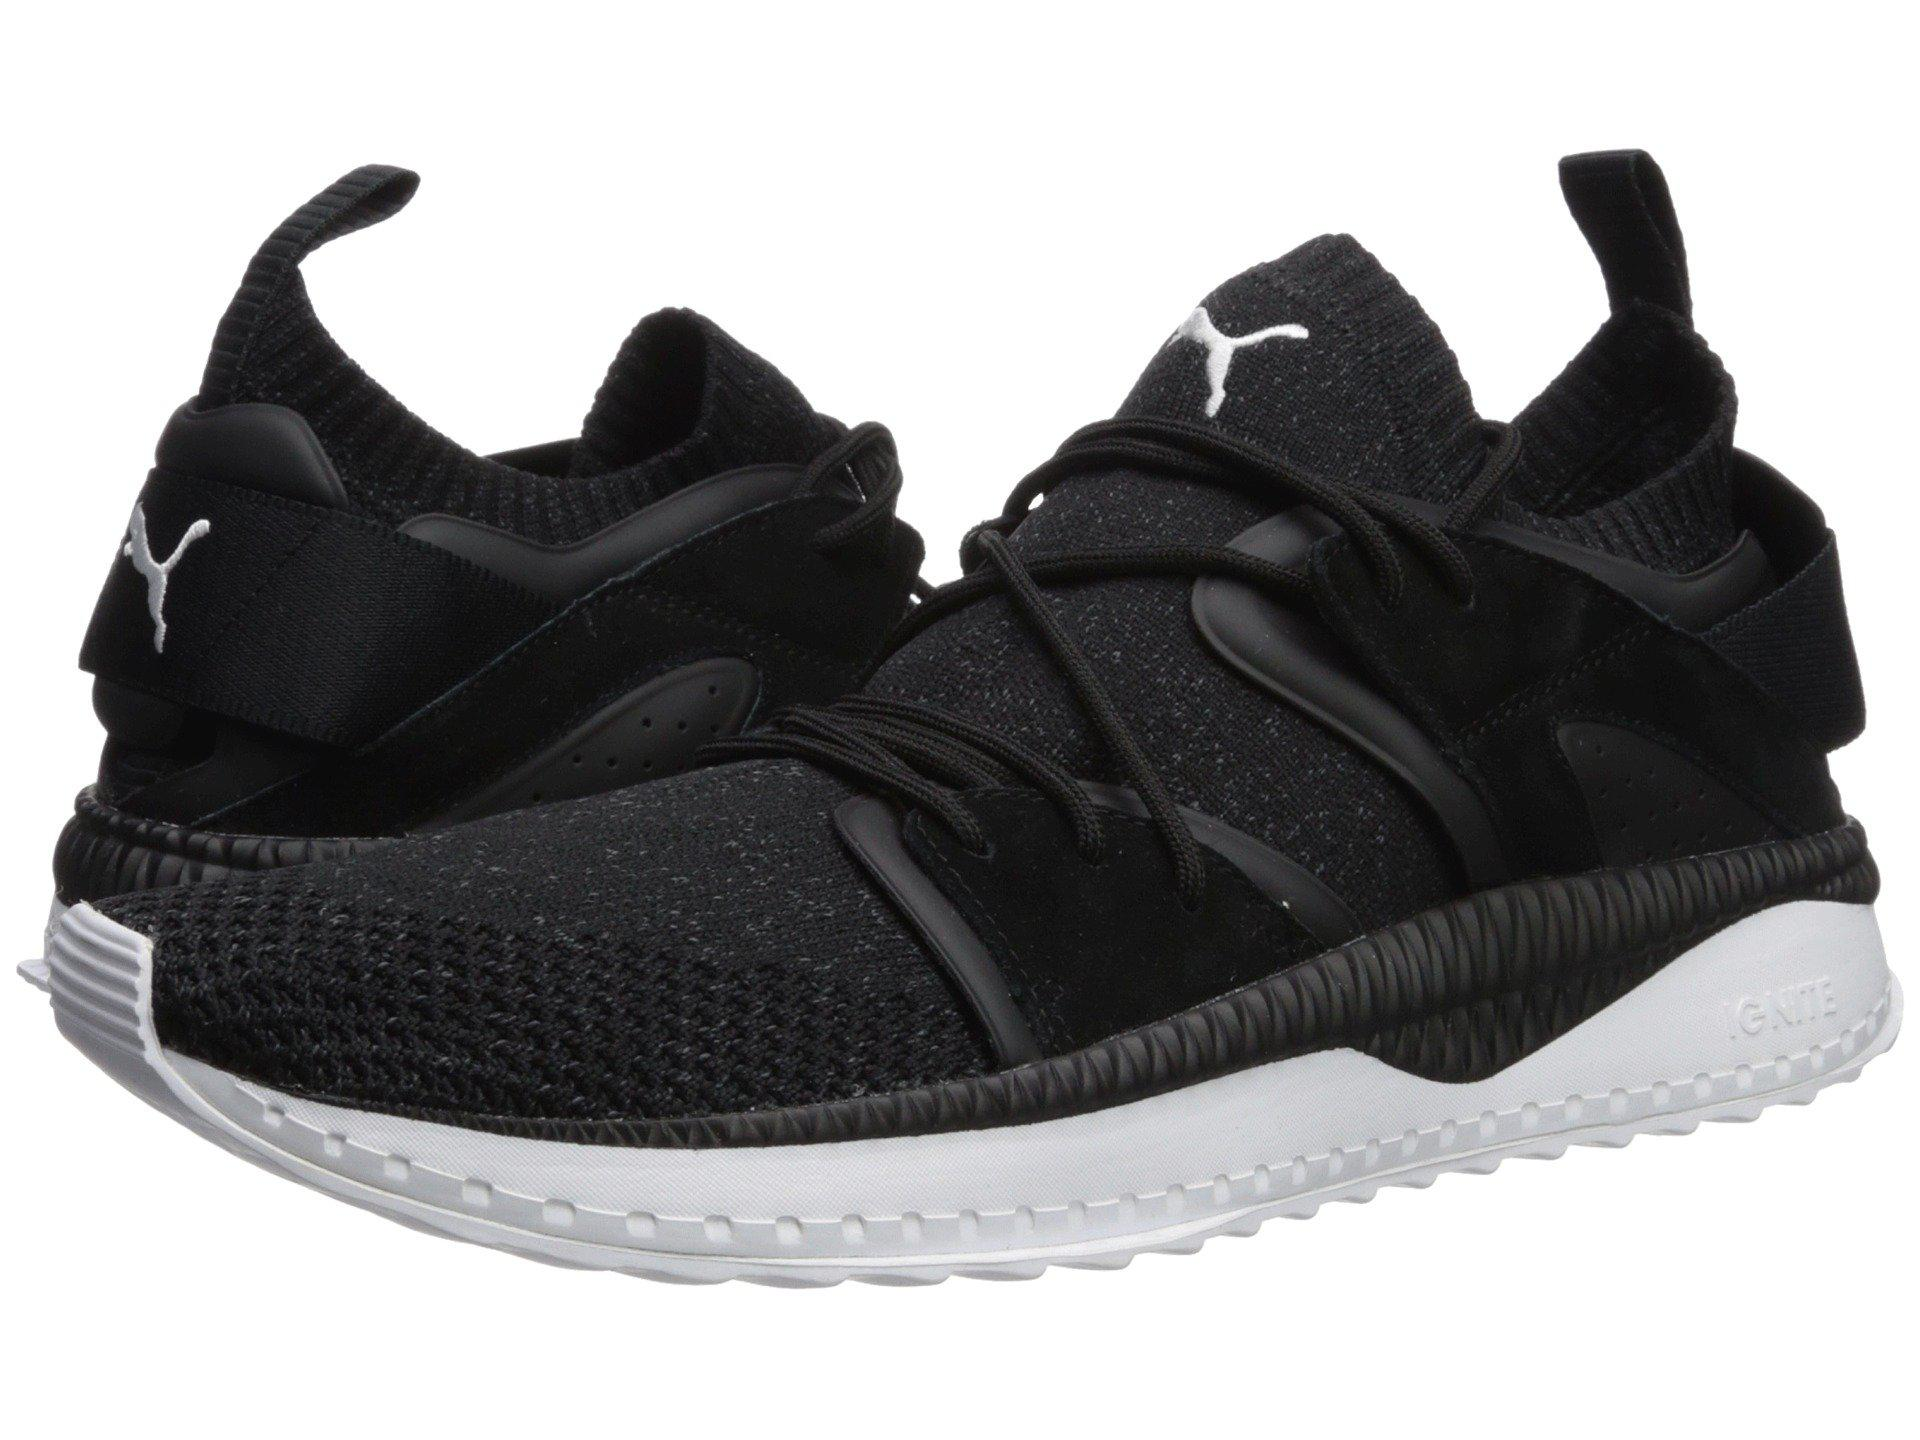 dd2a2d7d9ea Lyst - PUMA Tsugi Blaze Evoknit in Black for Men